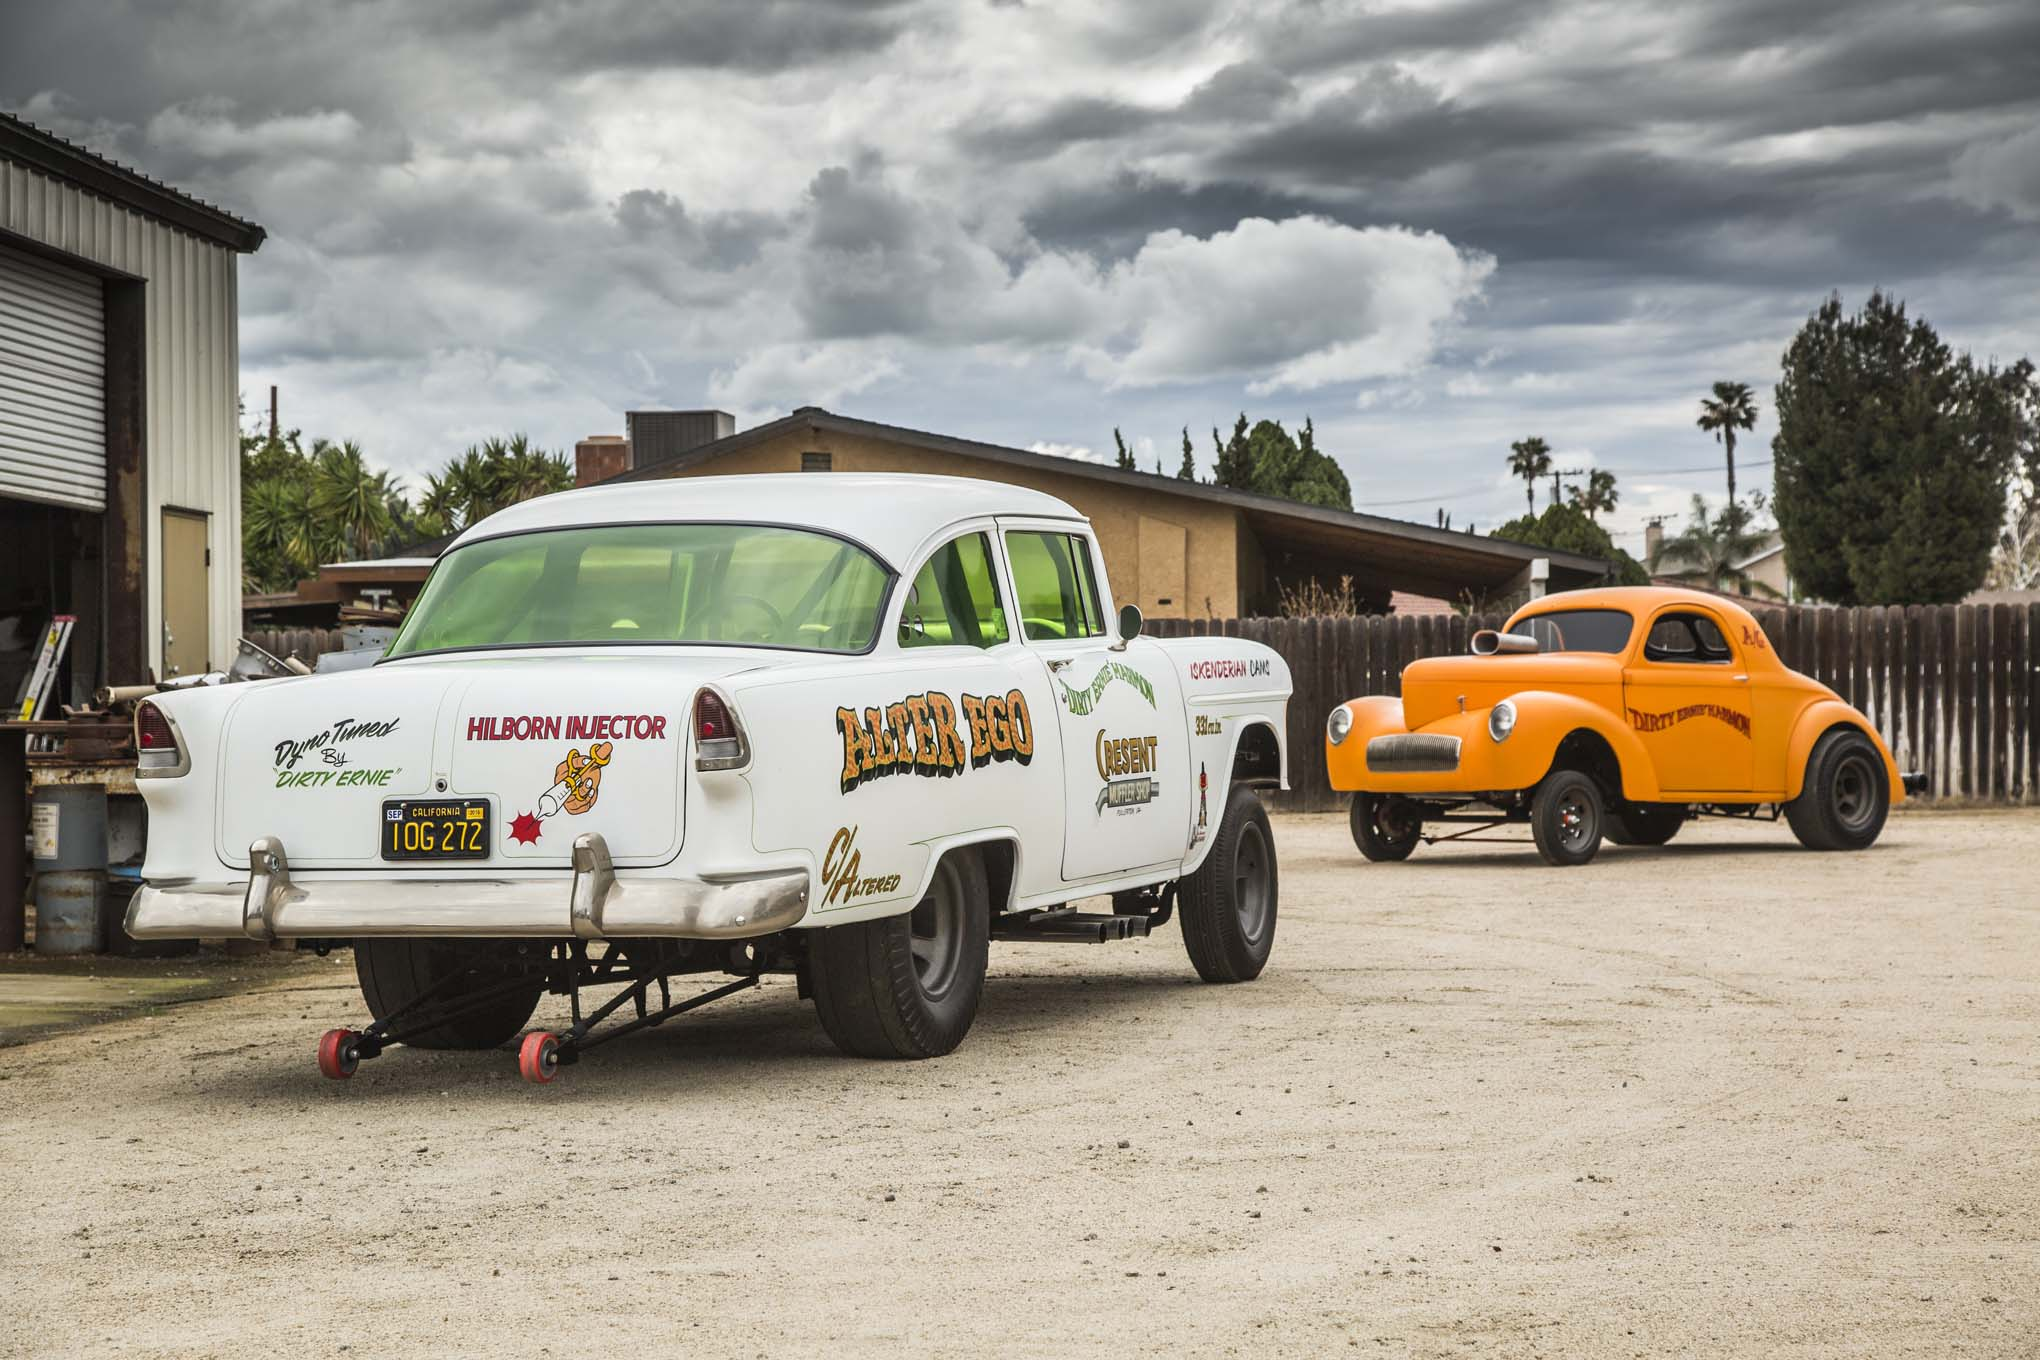 Ernie Harmon built his two gassers 50 years apart, the Chevy when he was a teenager and the Willys just a year or so ago. Both exhibit the handiwork of a man dedicated to his craft.